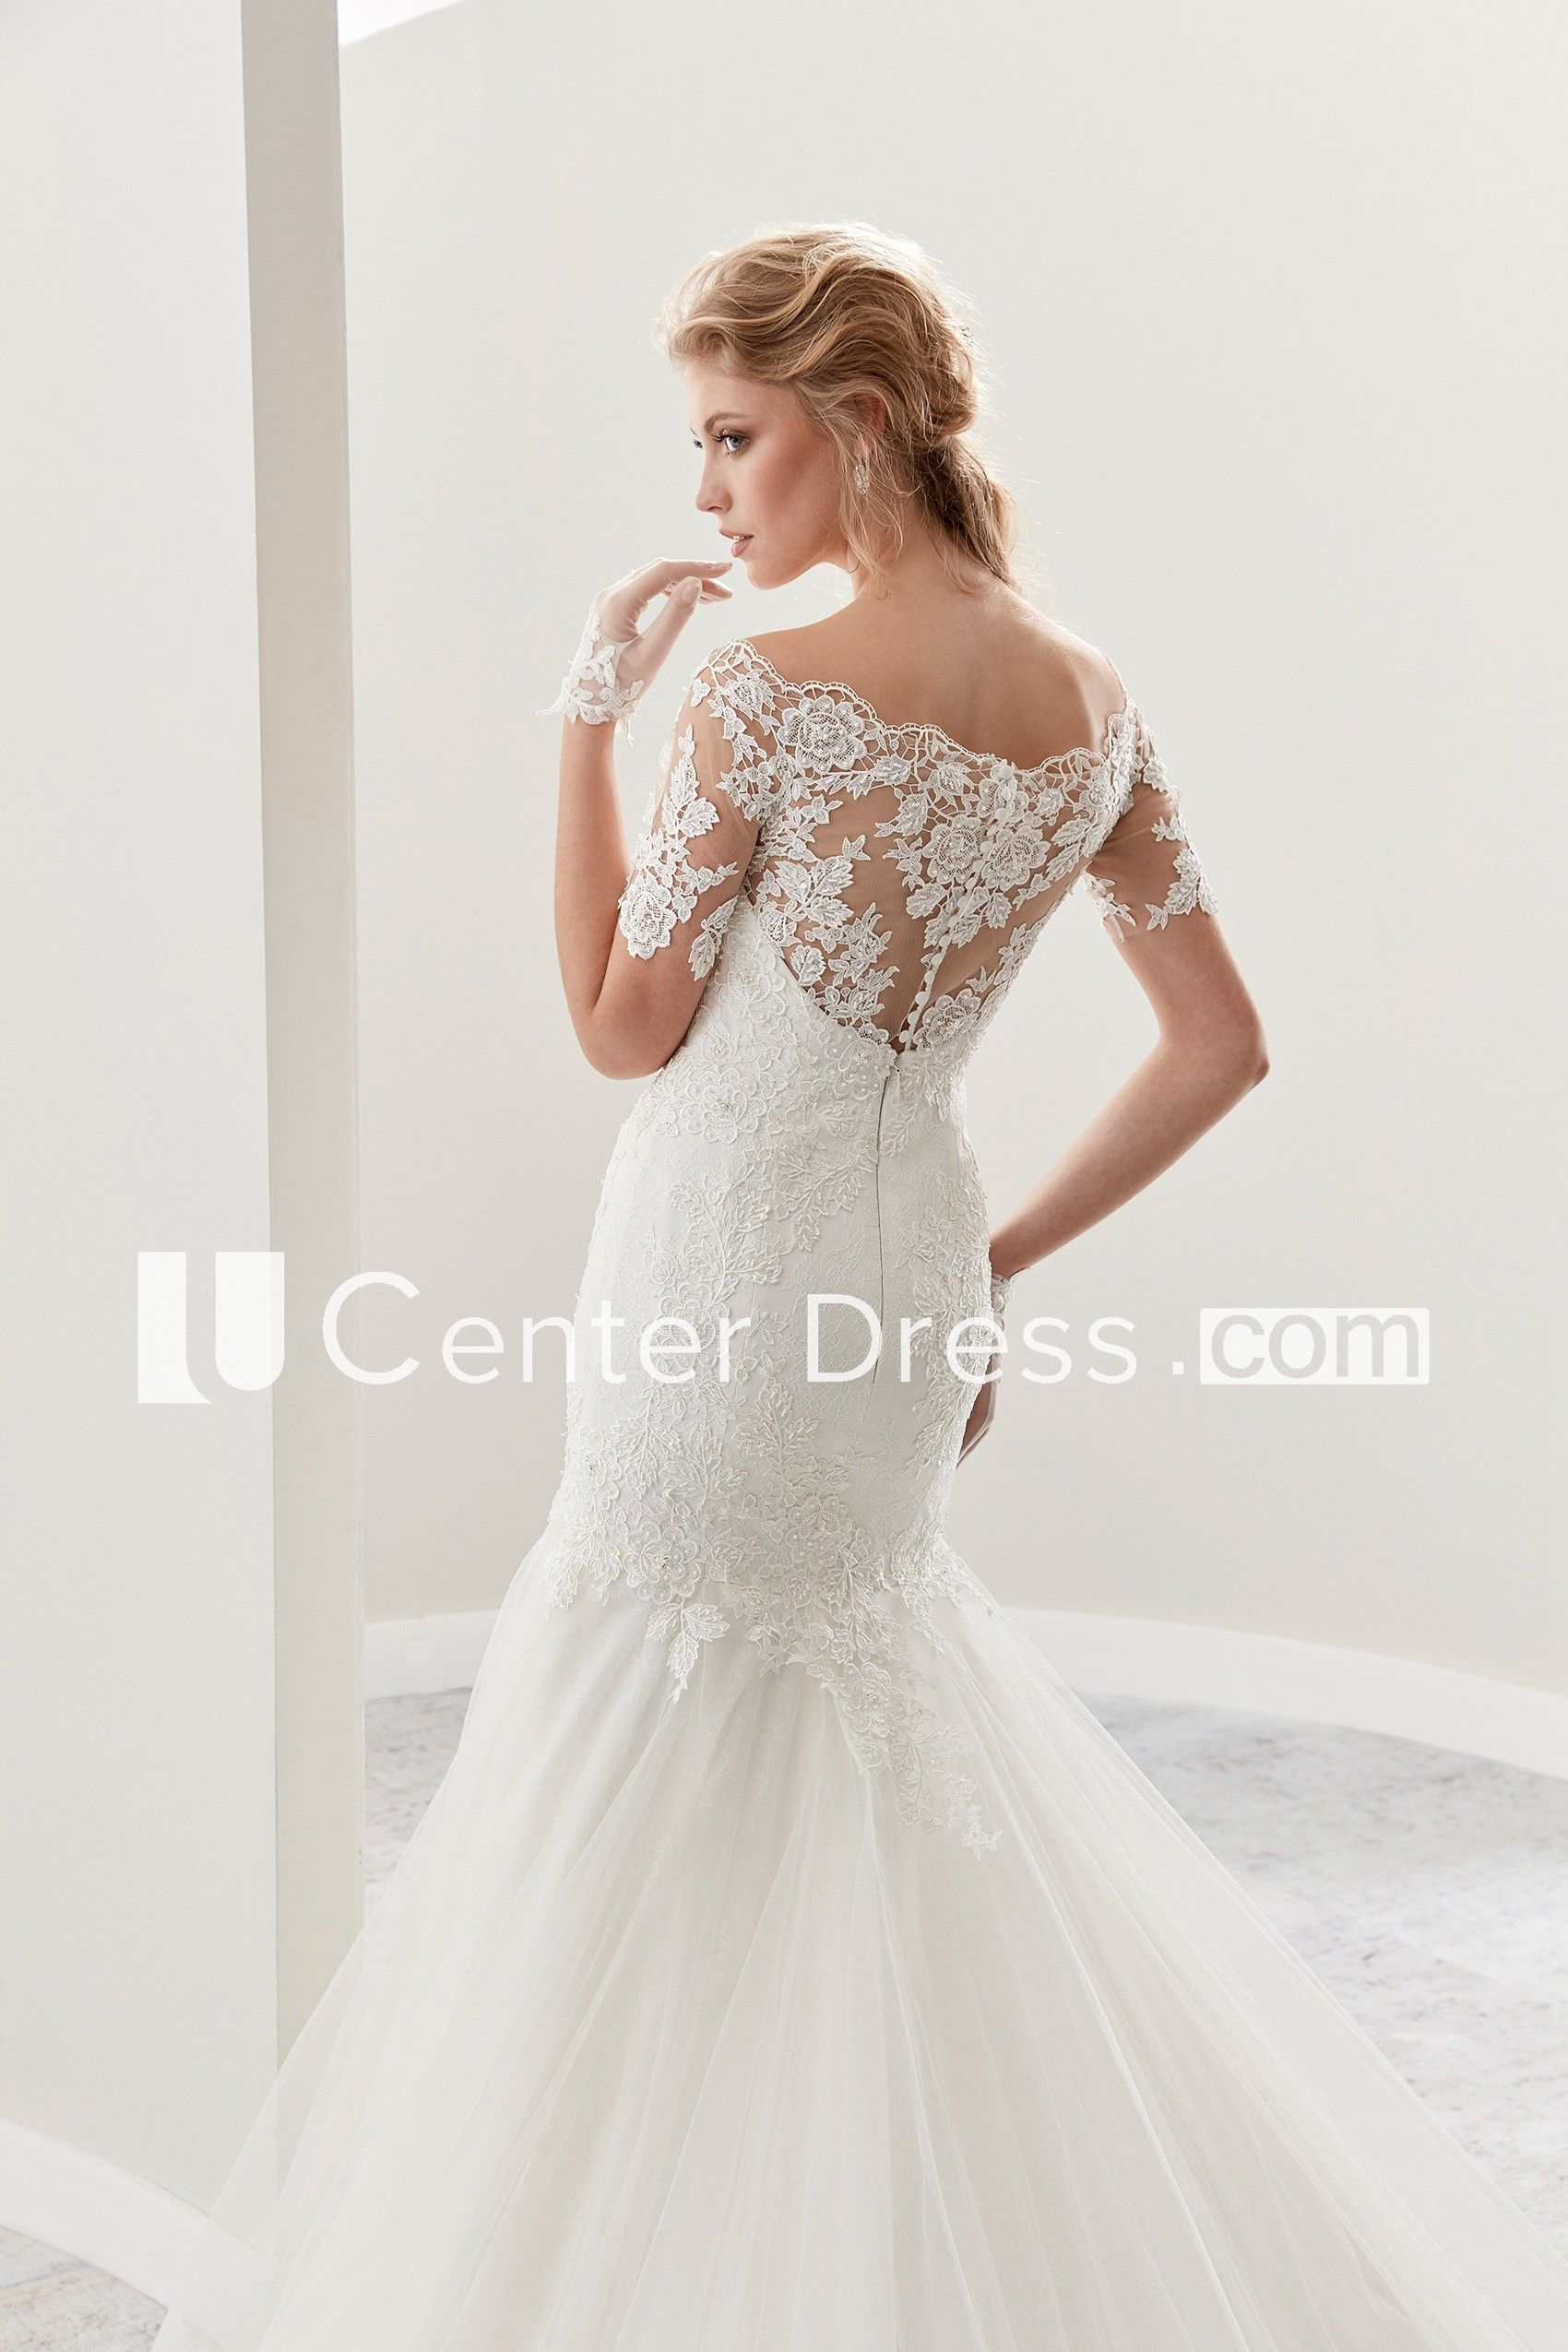 Wedding dress with lace sleeves  ScallopedNeck Mermaid Lace Gown With TShirt Sleeves And Ruffles